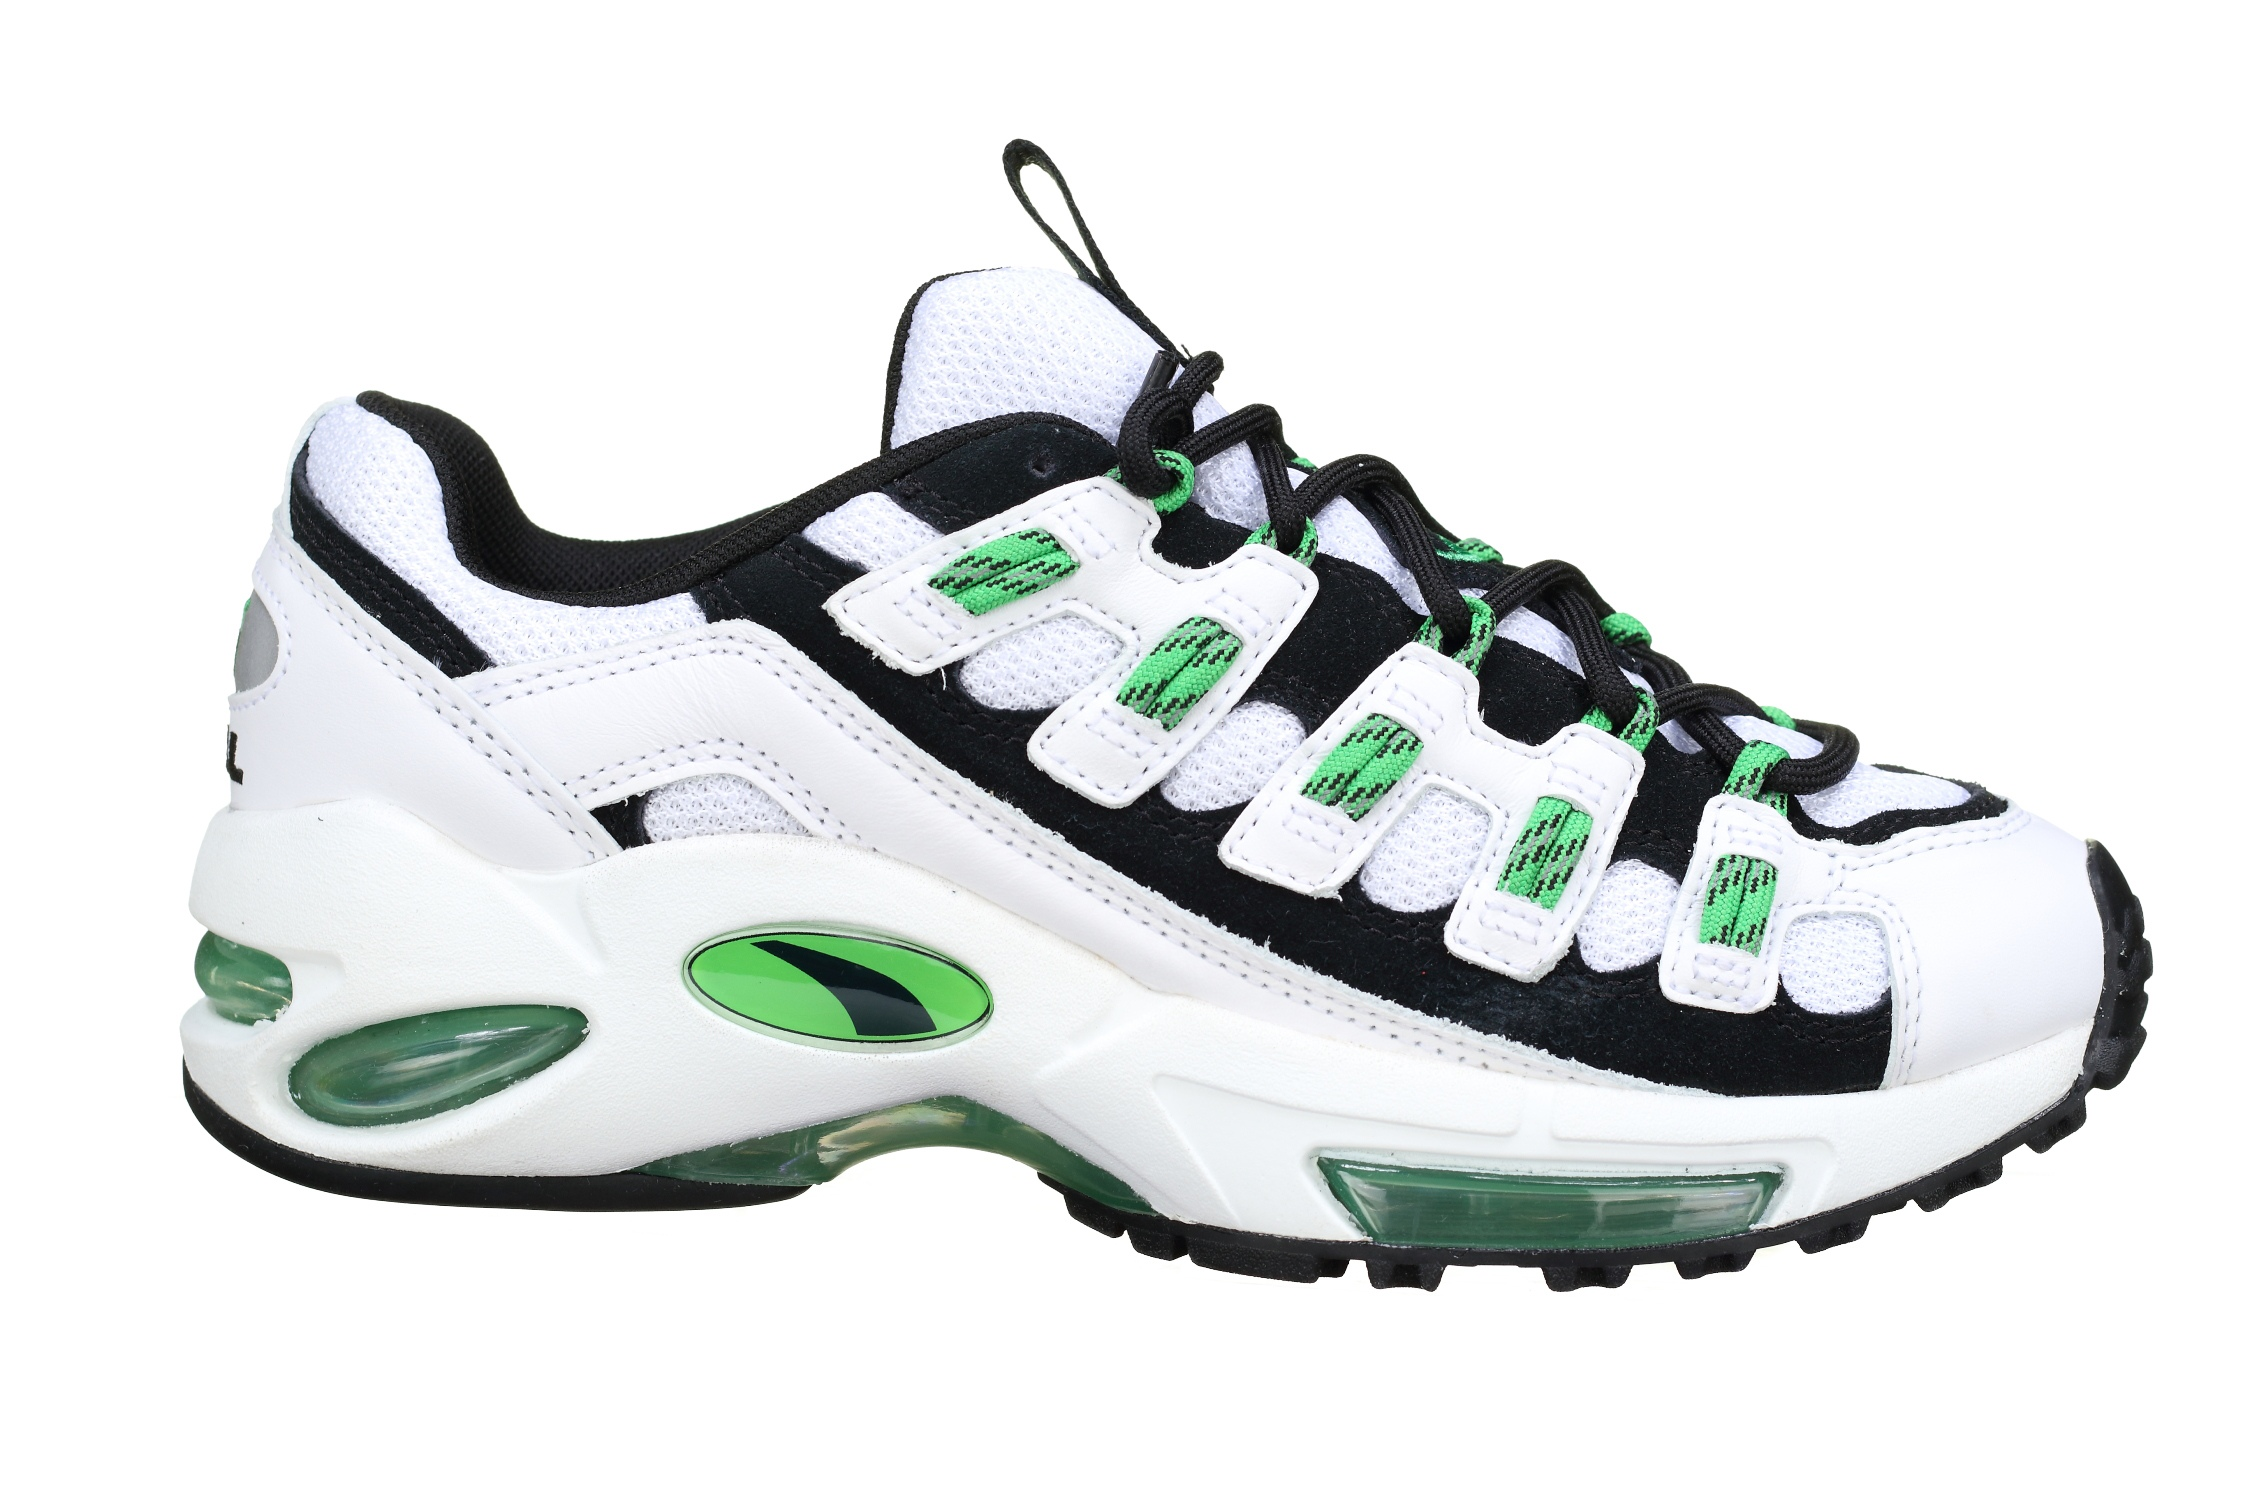 http://www.leadermode.com/176216/puma-cell-endura-369357-01-white-green.jpg